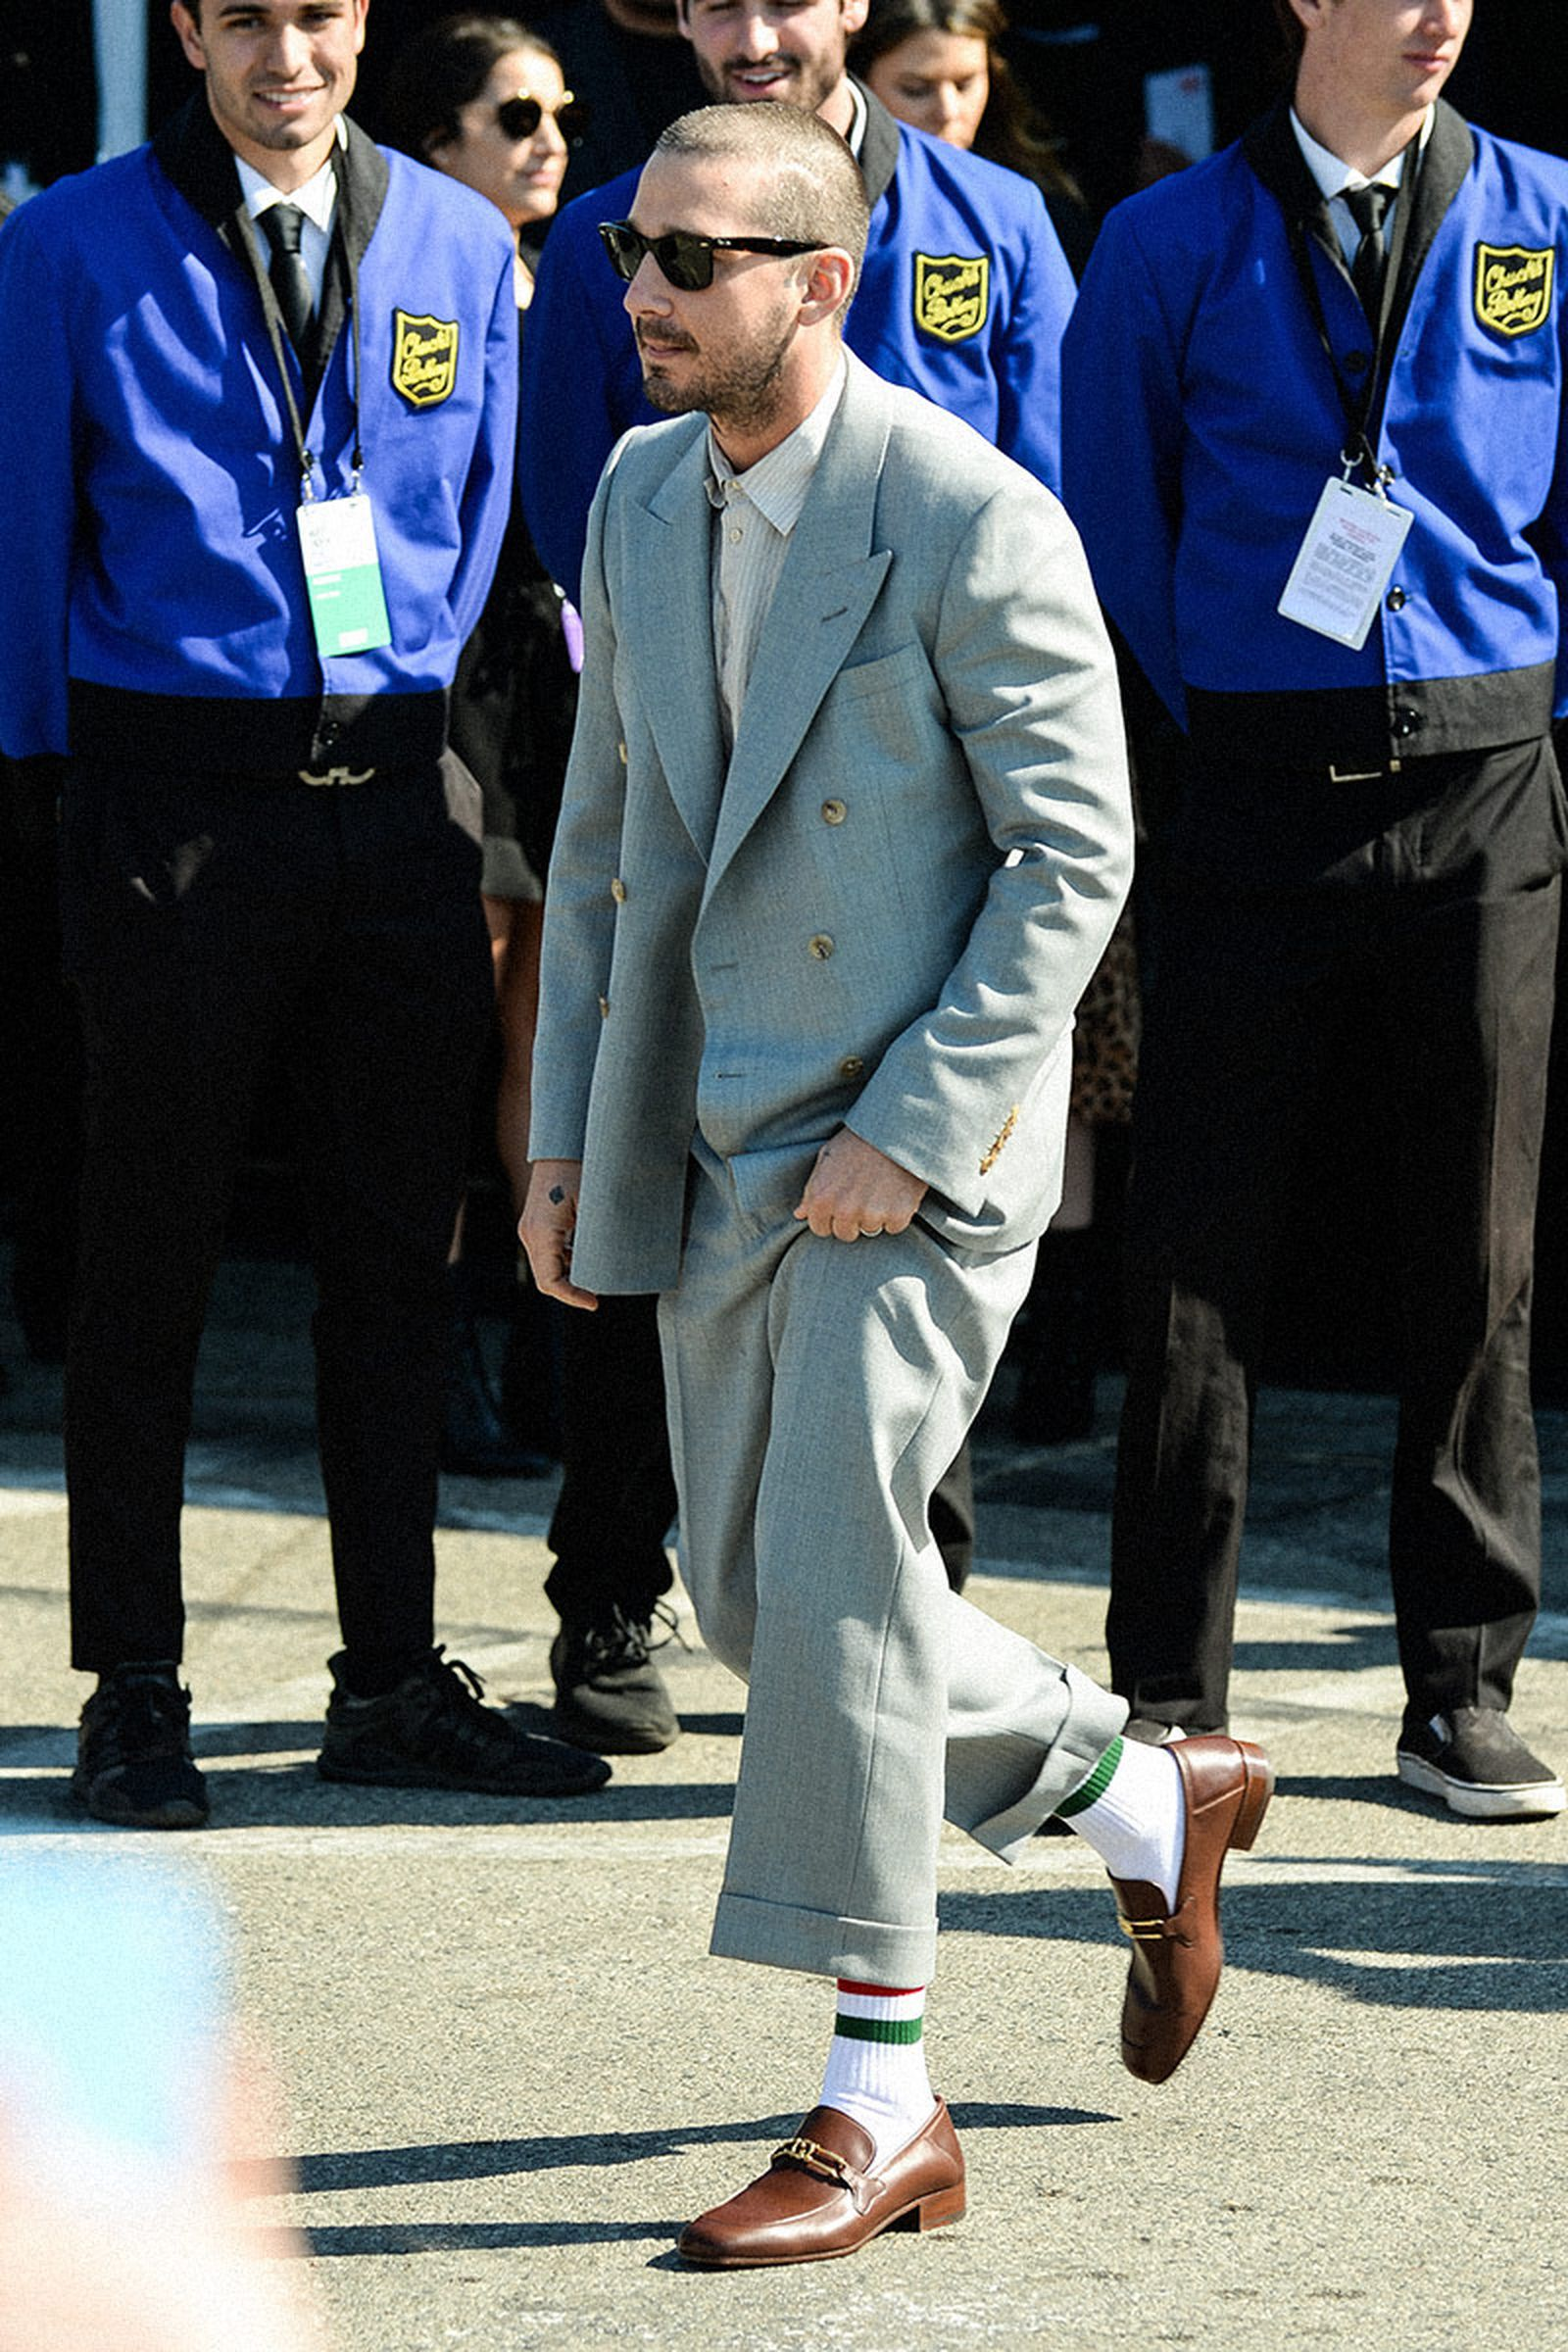 shia-gucci-loafers-suit-111